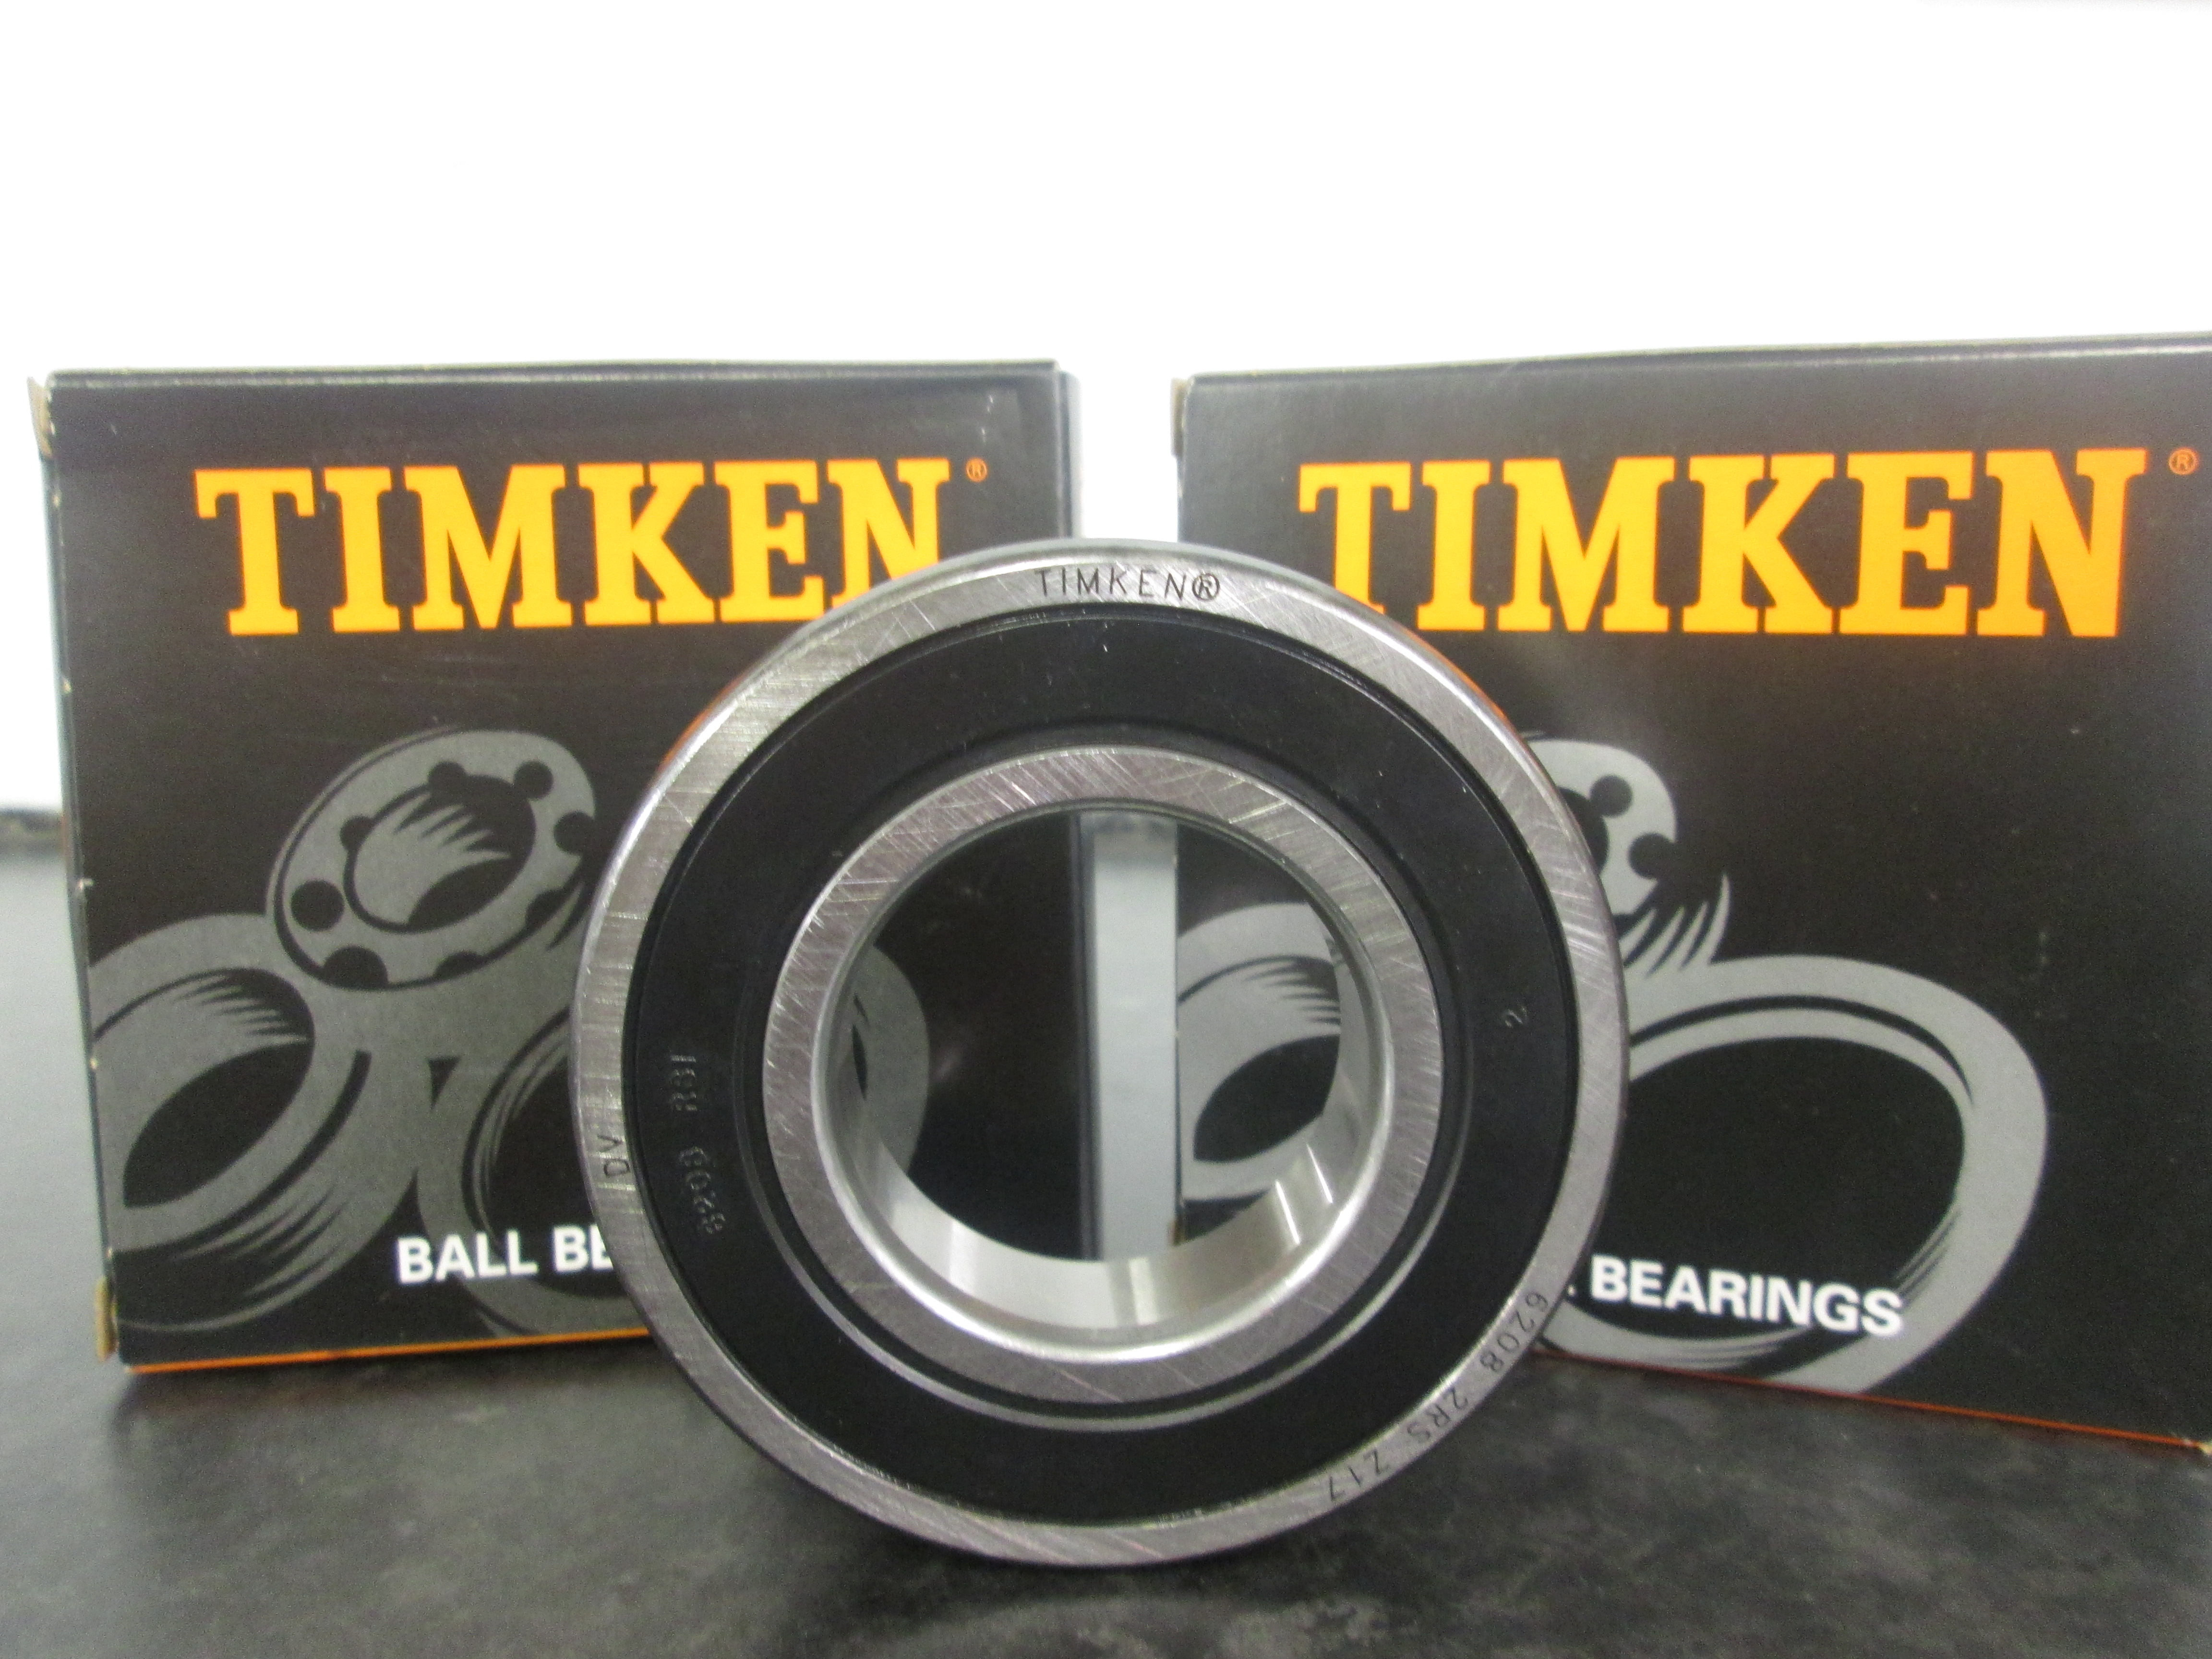 6200 - 6218 2RS (Bearings with Rubber Seals) C3 Clearance